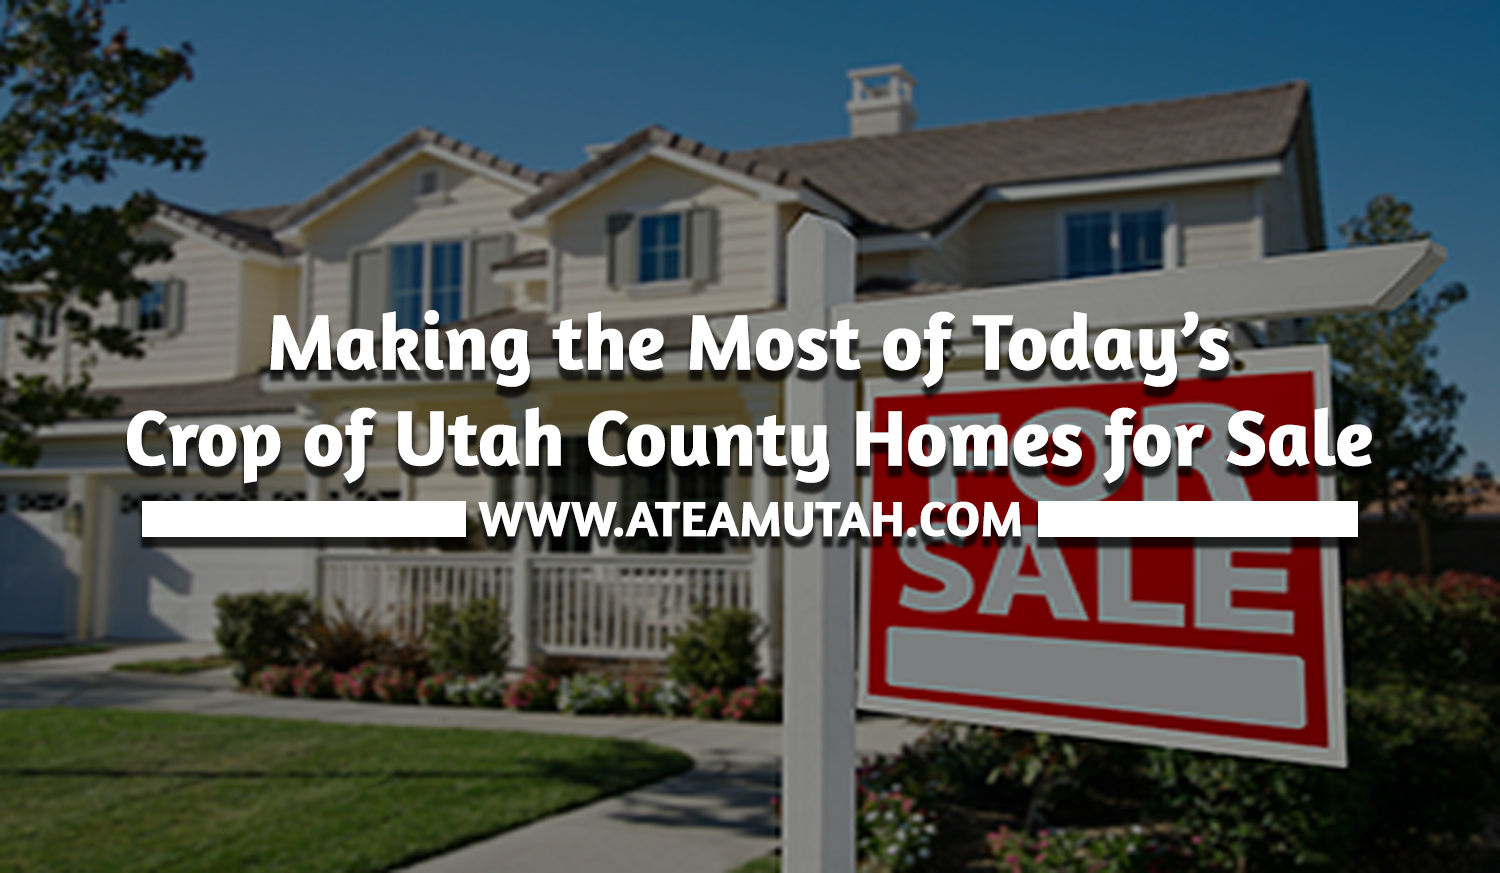 Making the Most of Today's Crop of Utah County Homes for Sale